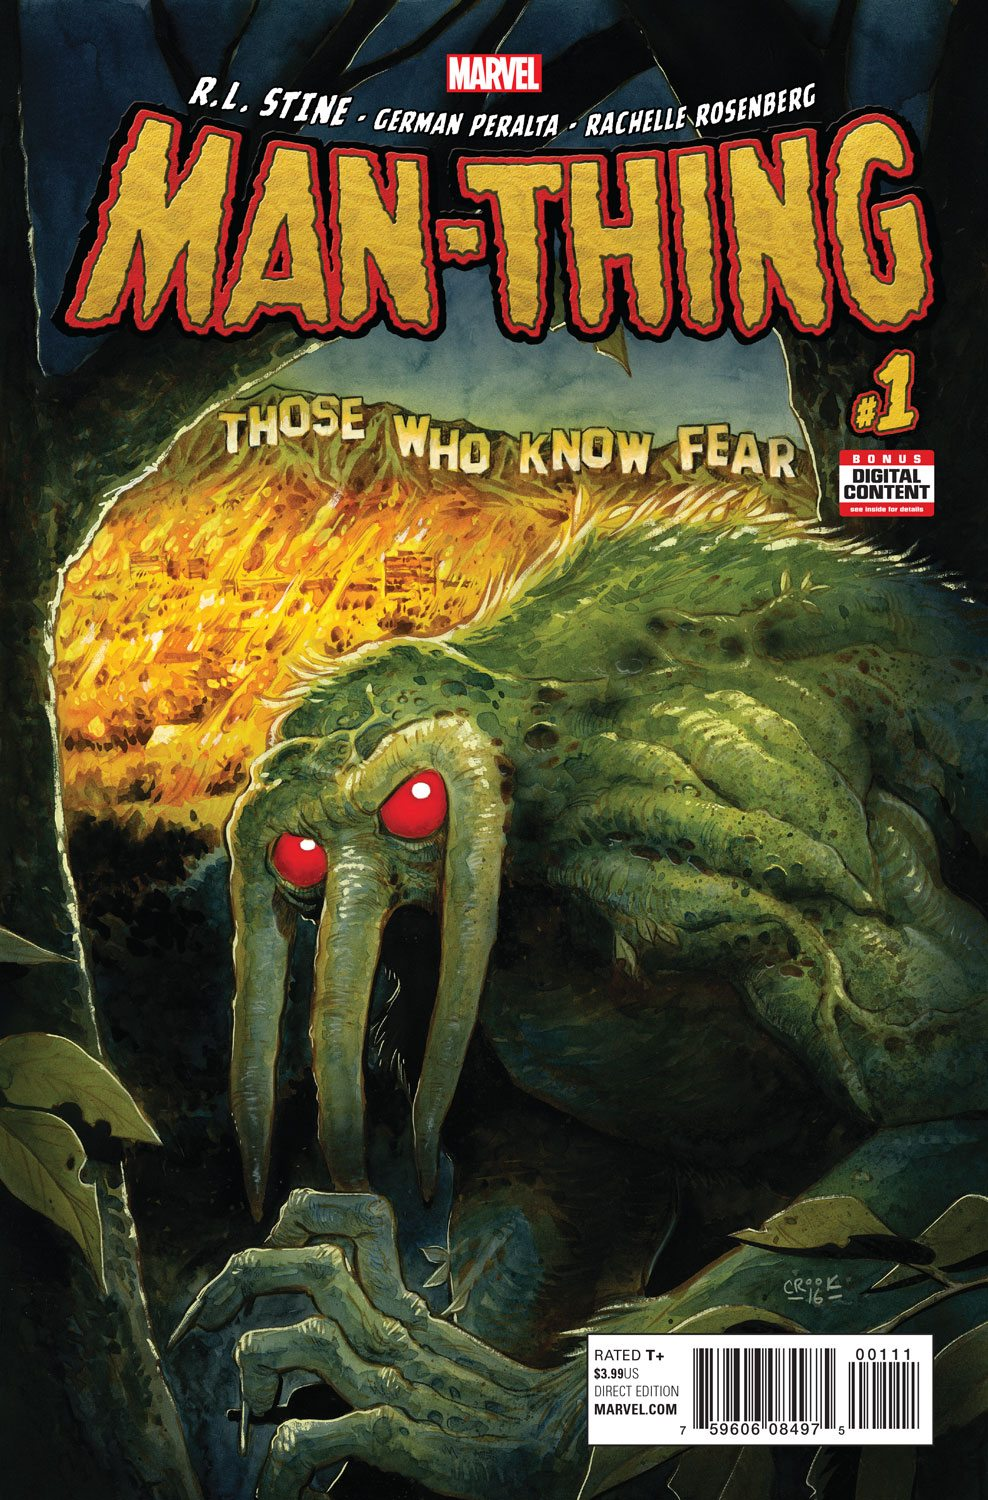 World Famous Author R.L. Stine Comes to Marvel – Your New Look at MAN-THING #1!